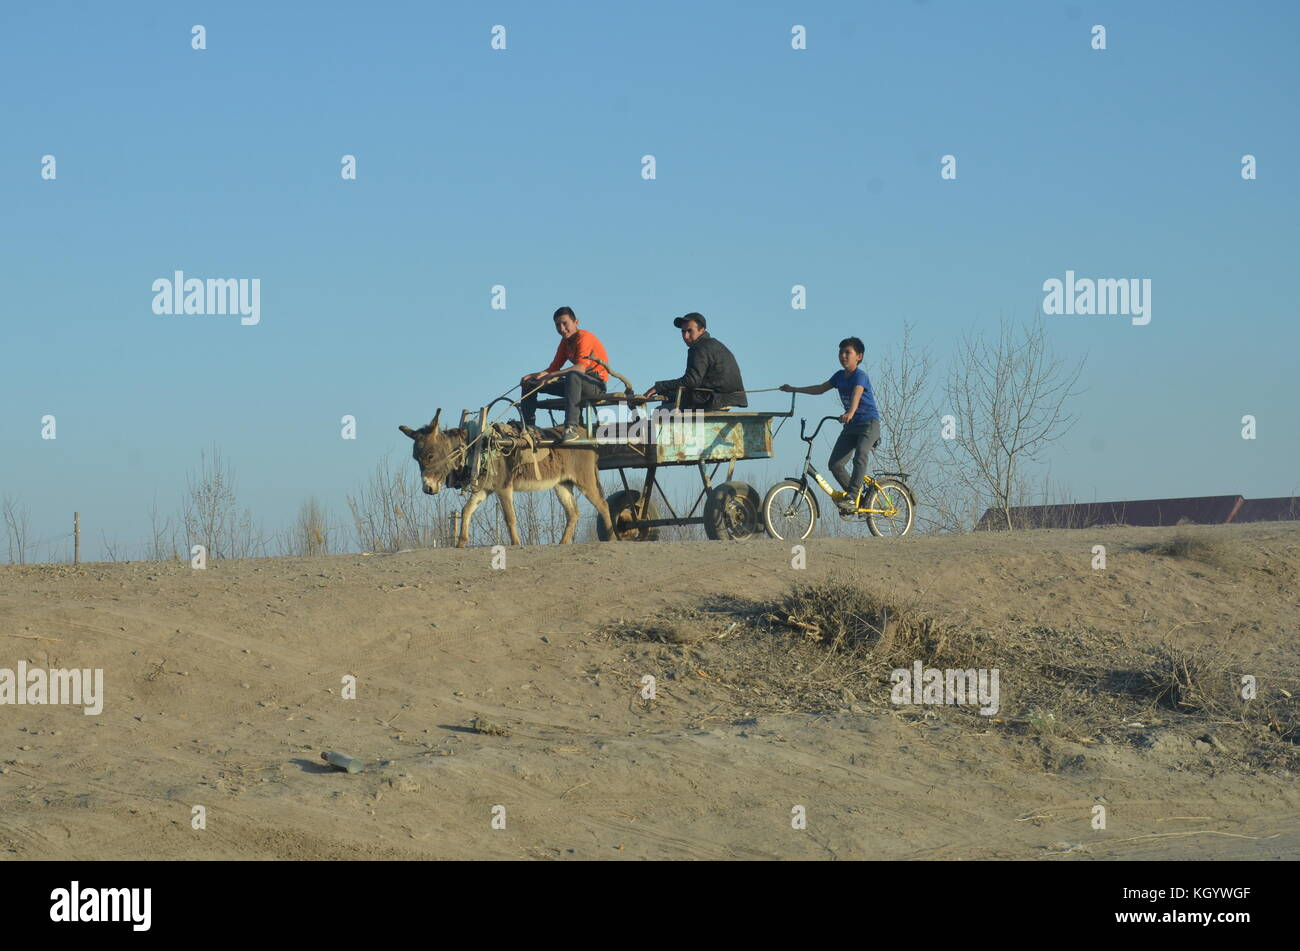 tree children / teenagers in the desert riding on a donkey, cart and bicycle in Uzbekistan. Stock Photo